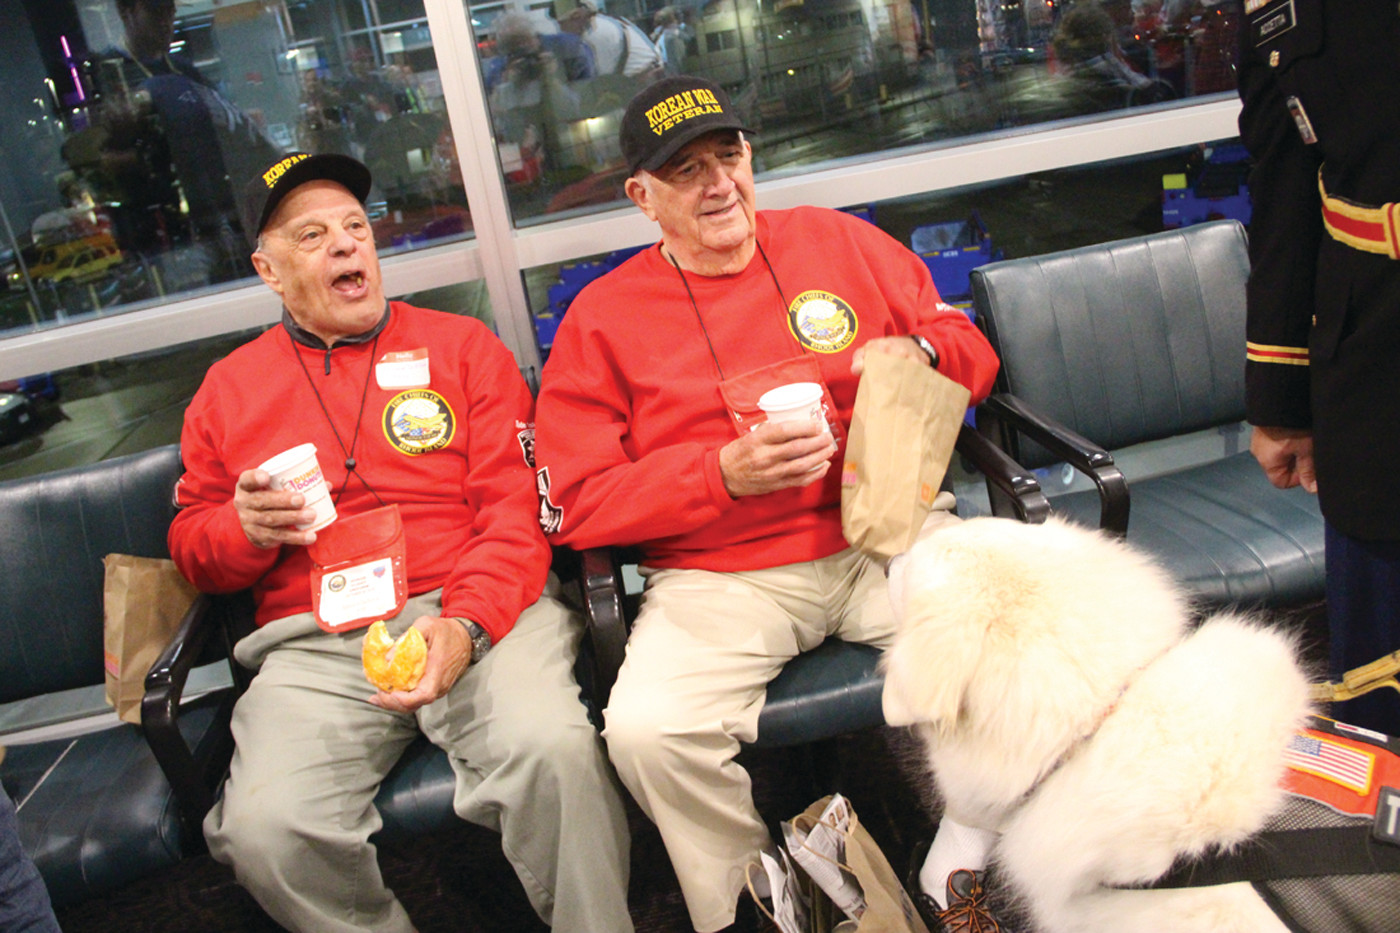 ENOUGH TO SHARE: Korean War veterans and buddies Ed DeSilva and Anthony Bruno enjoy coffee and donuts before Saturday's flight Regan National Airport in Washington. The PVD Pups regular at Green didn't get to share in the goodies, although he was warmly welcomed.